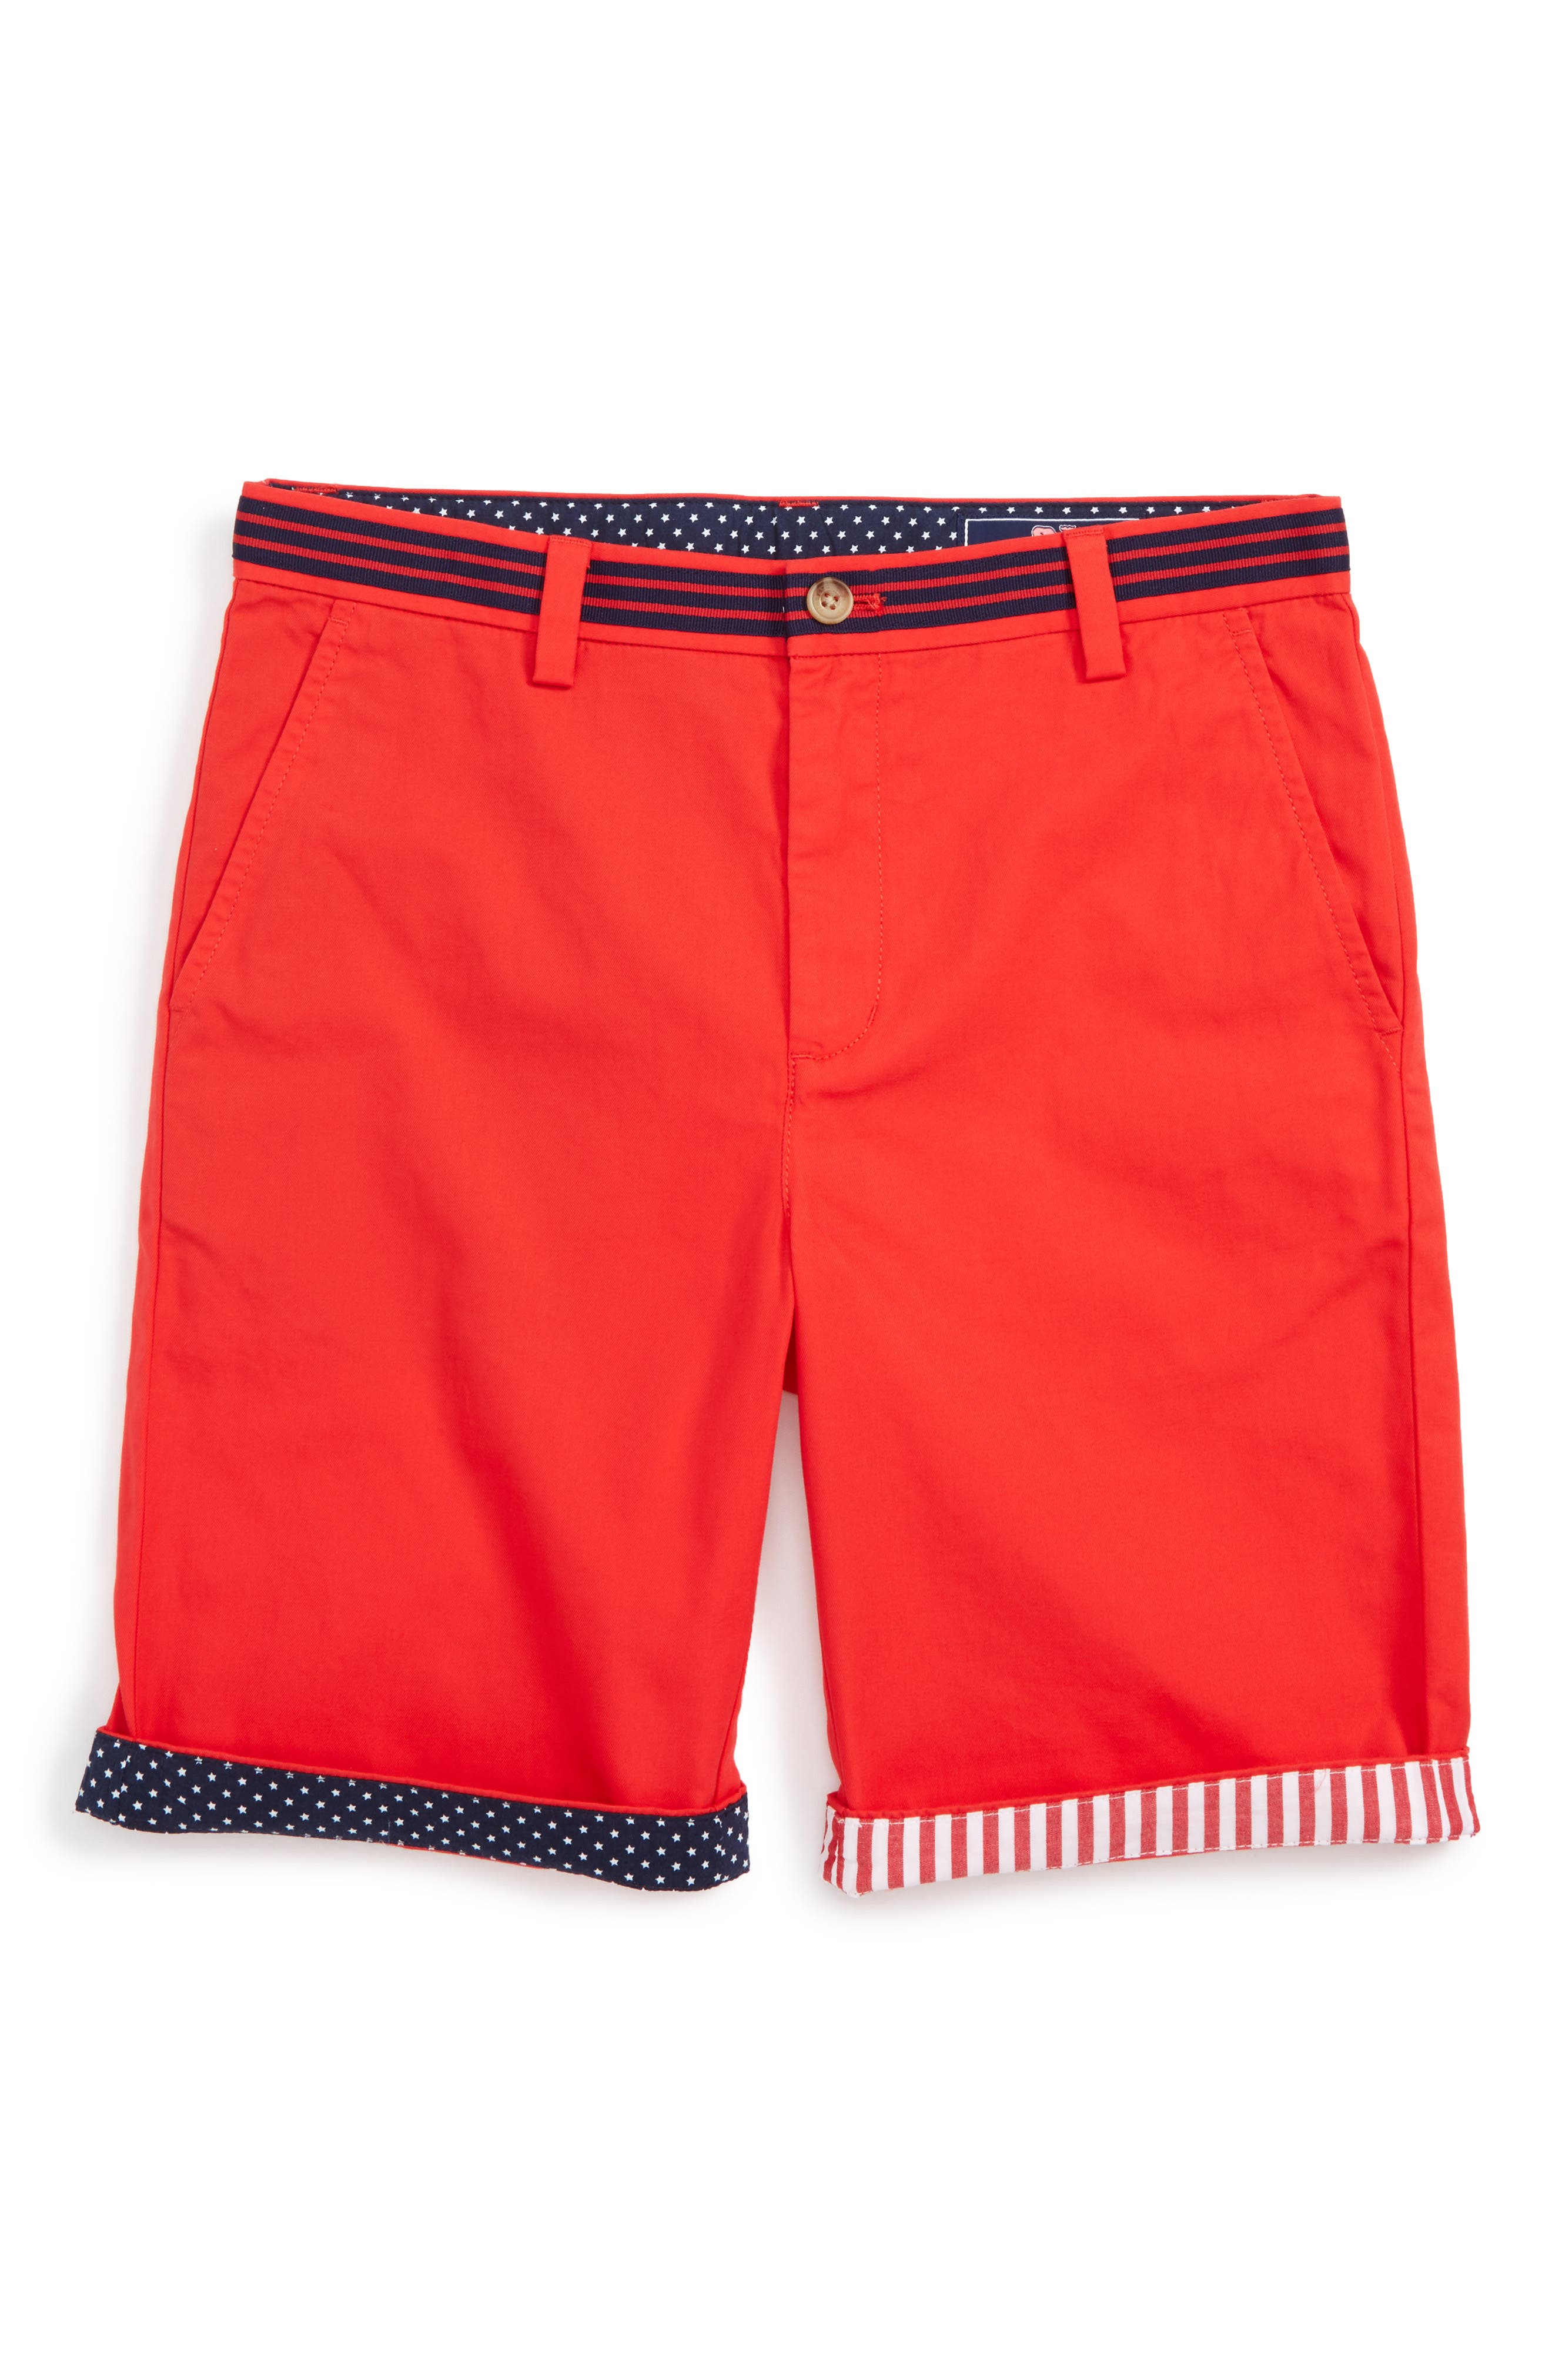 Vineyard Vines Summer Twill USA Breaker Shorts (Toddler Boys, Little Boys & Big Boys)